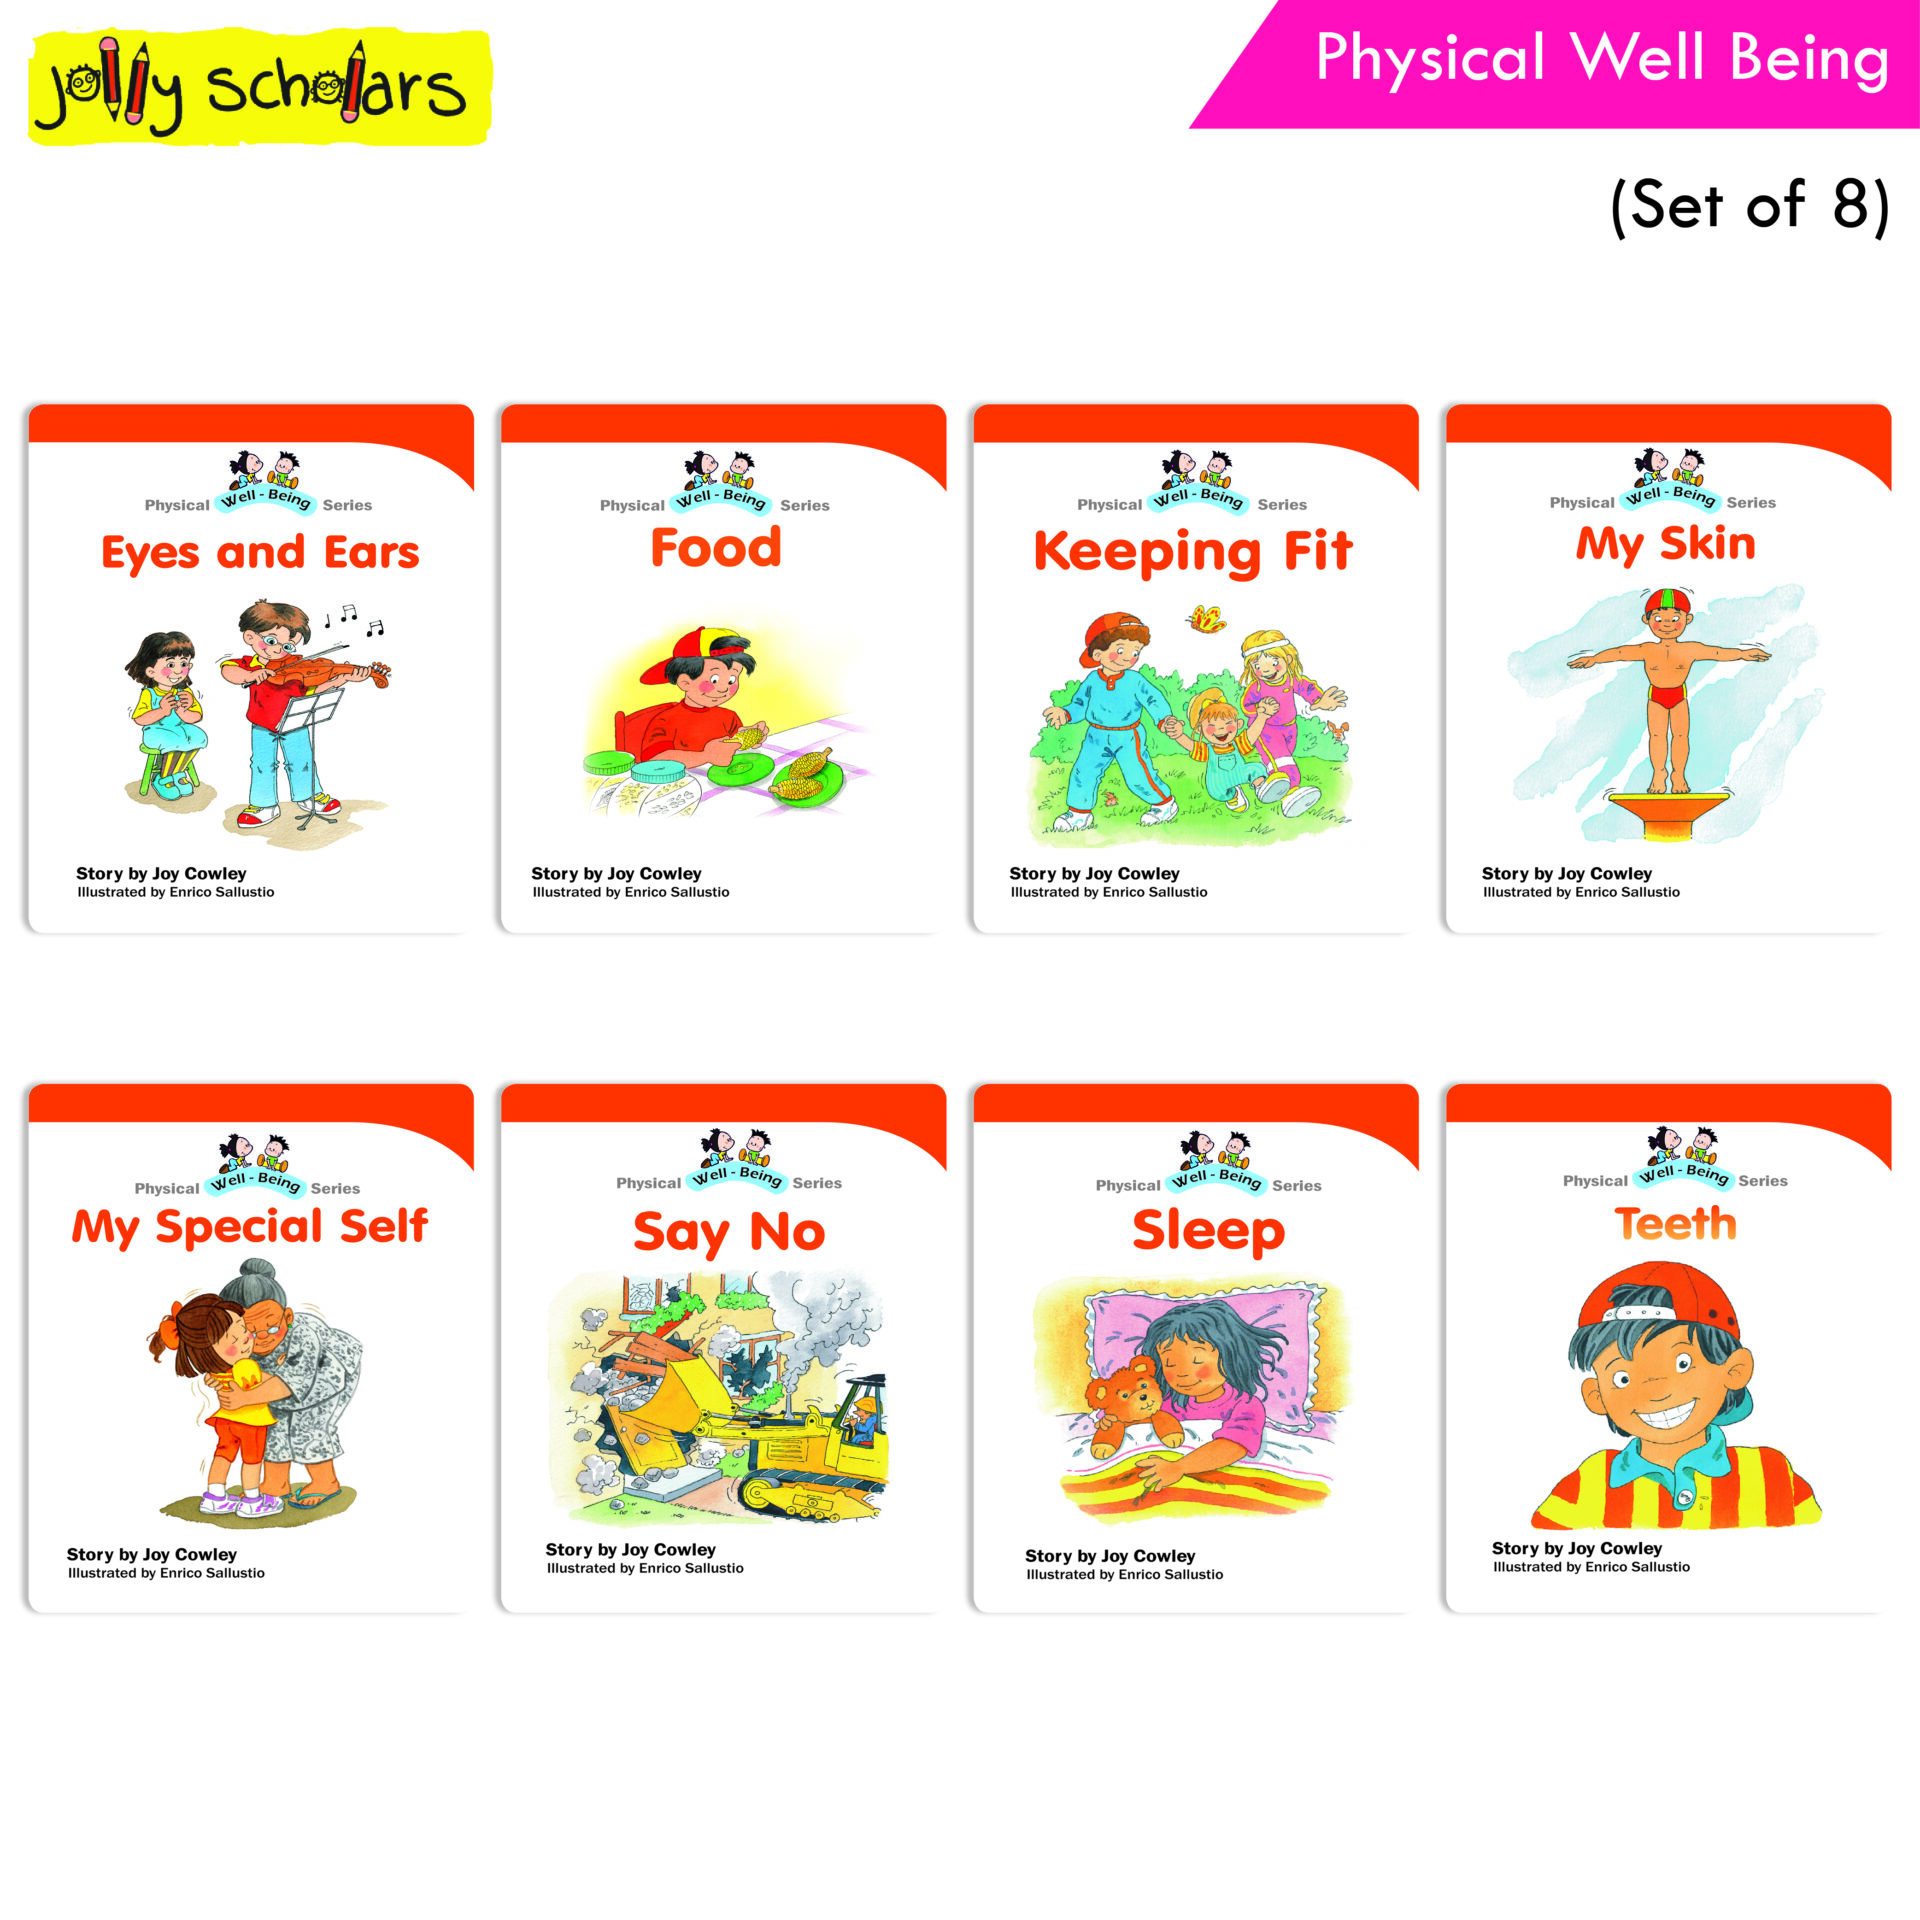 Jolly Scholars Physical Well Being Set of 8 1